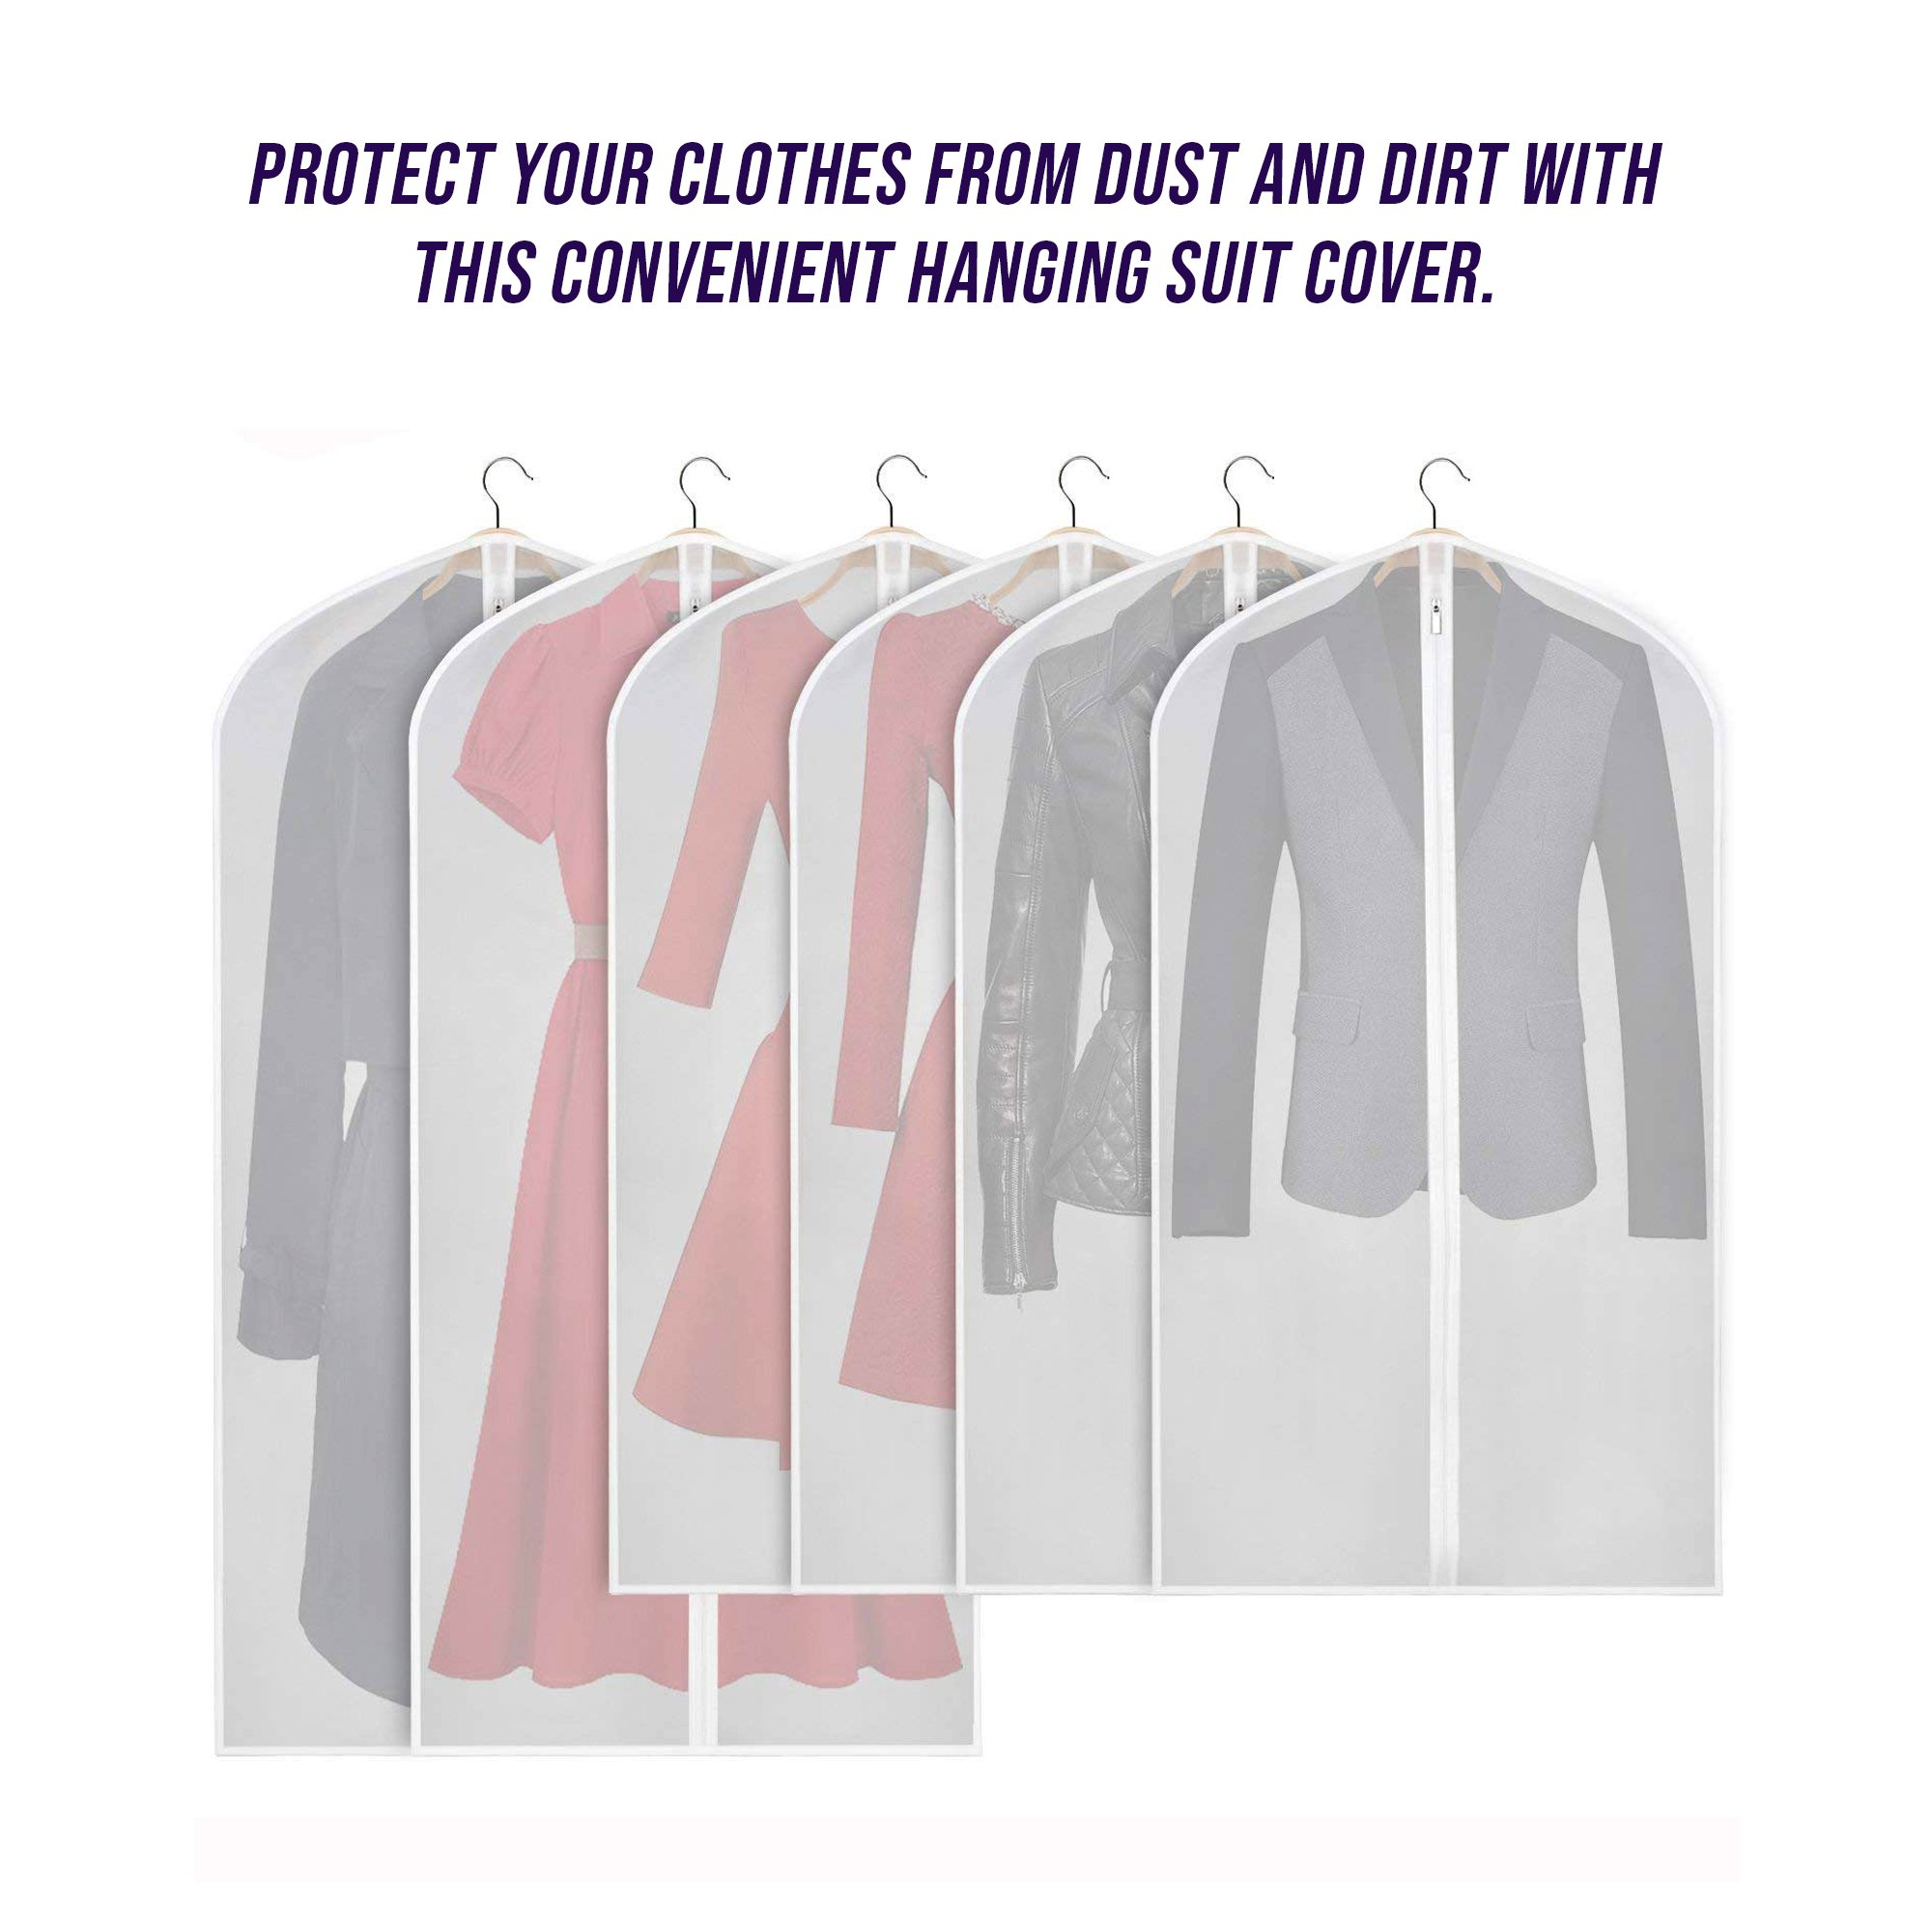 Details About Hanging Garment Bag For Storage Travel Suit Dust Proof Clothing